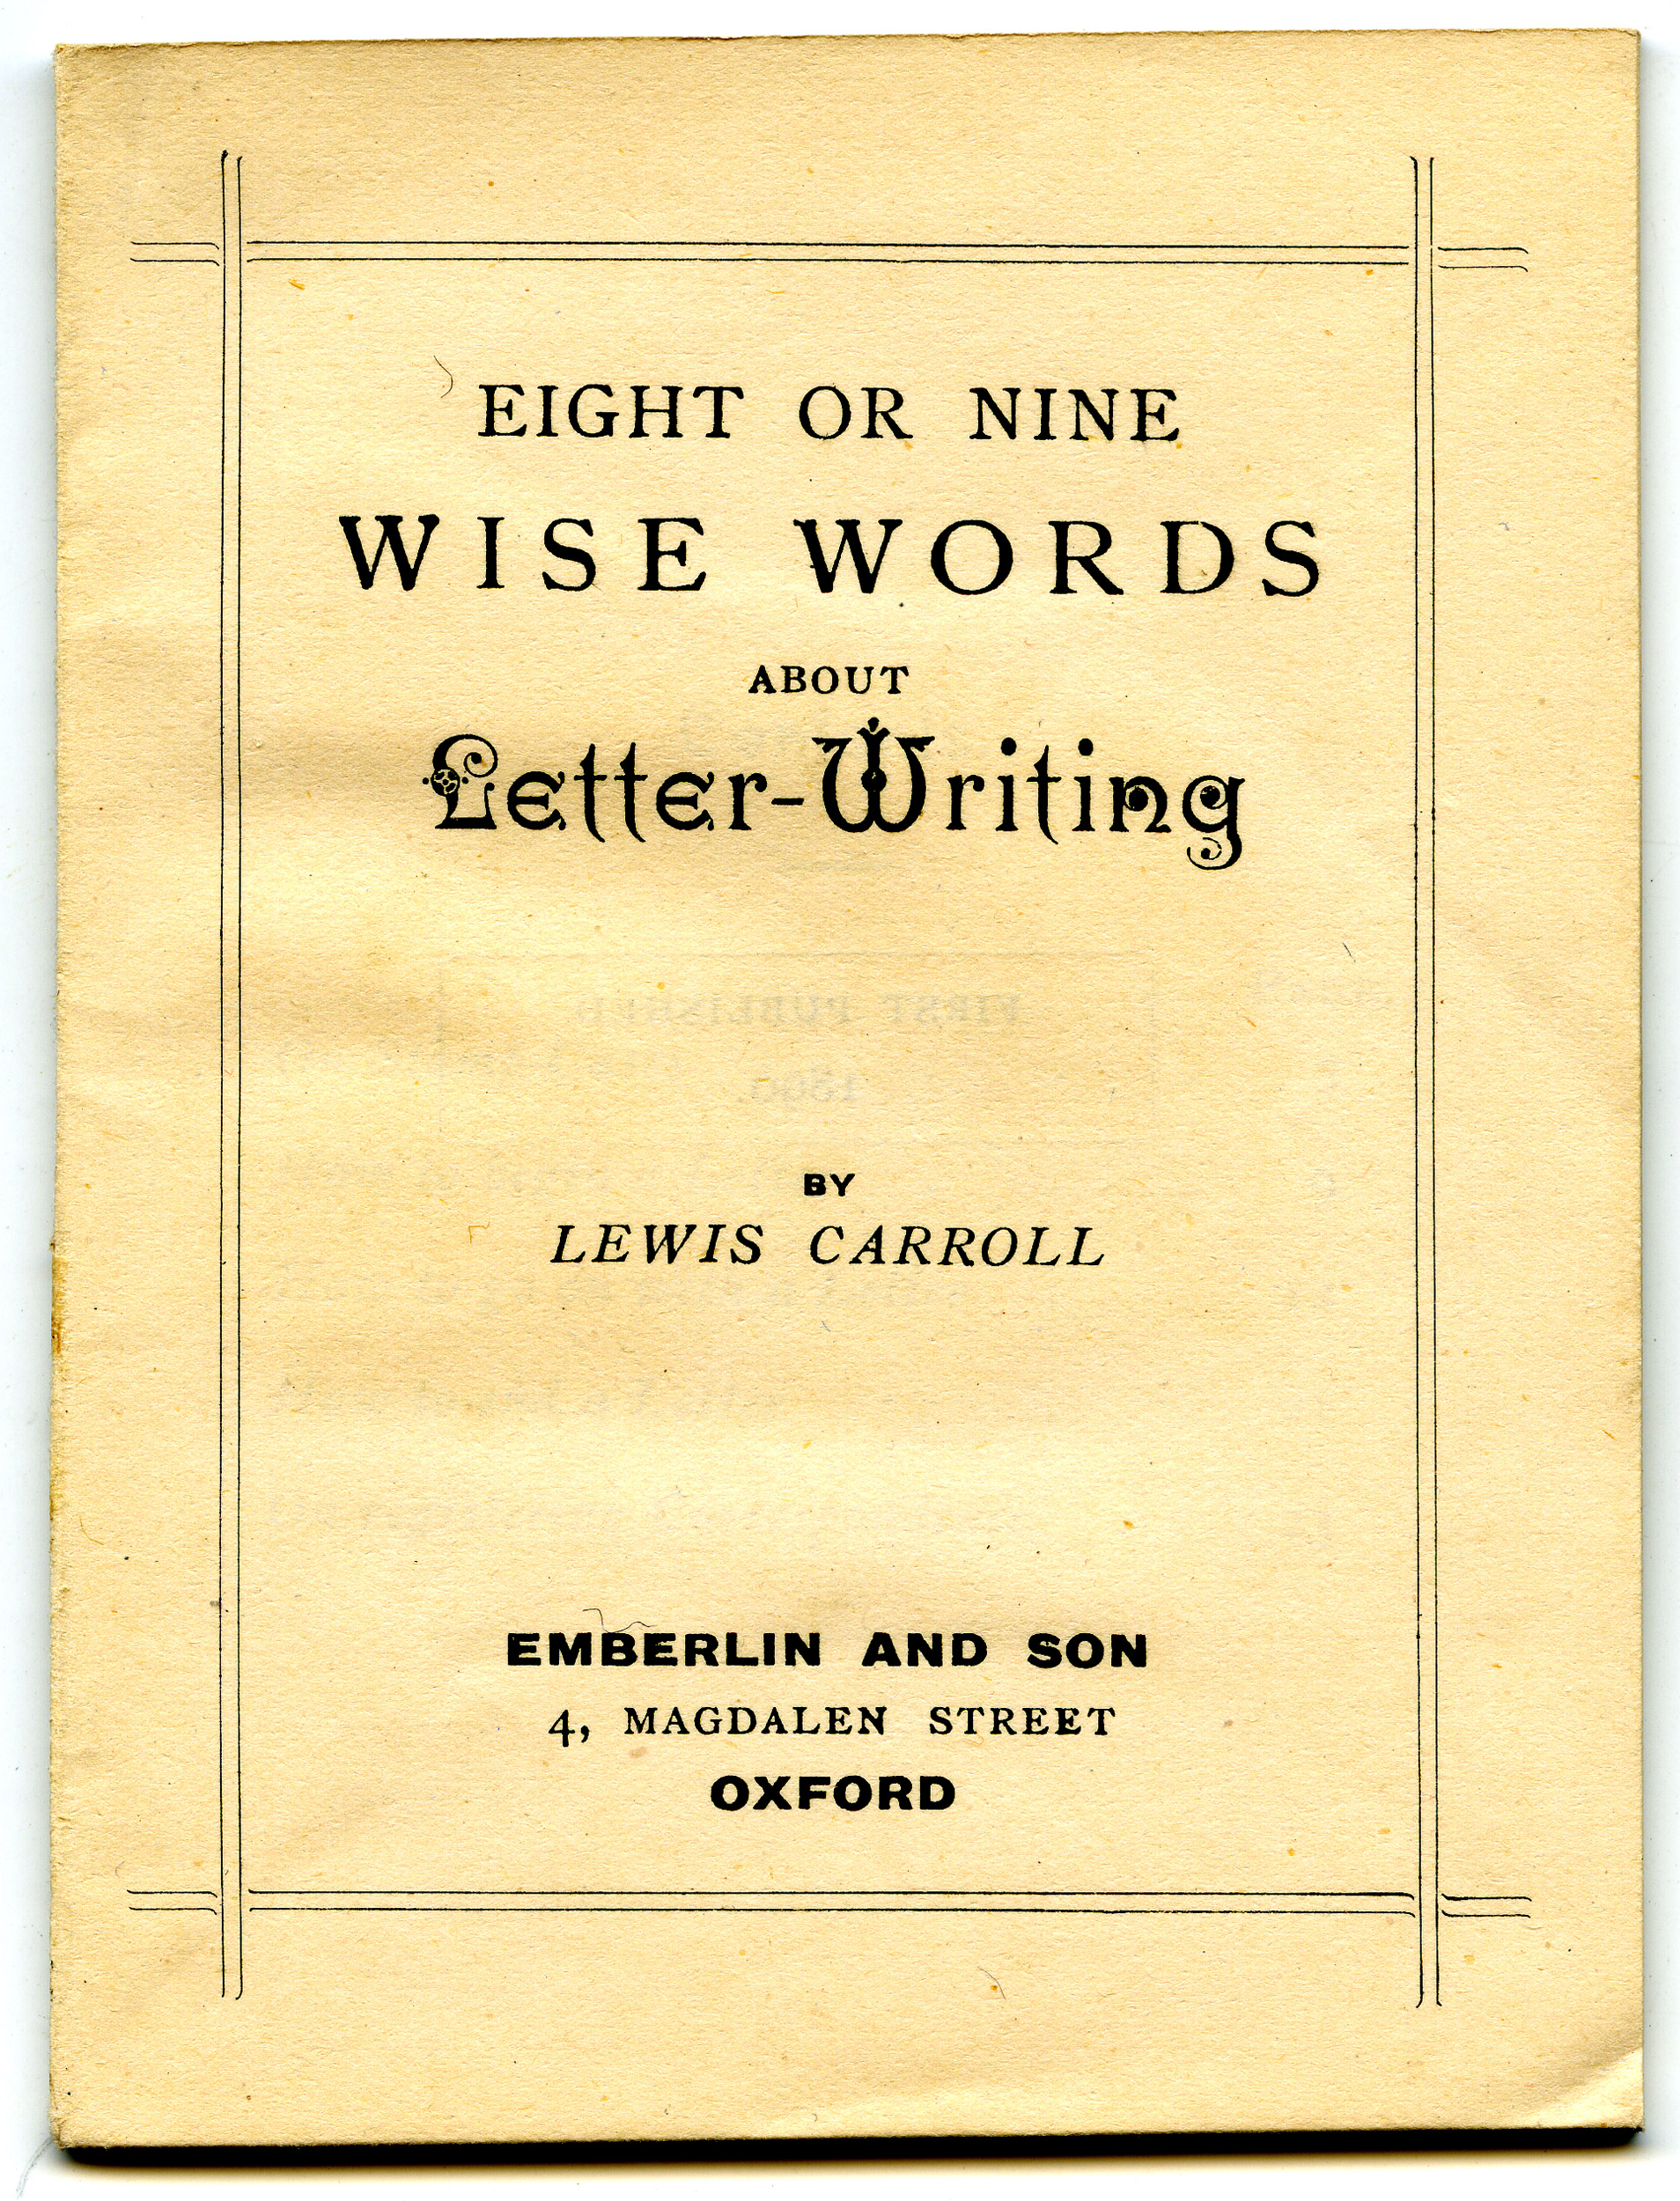 lewis carroll letter writing